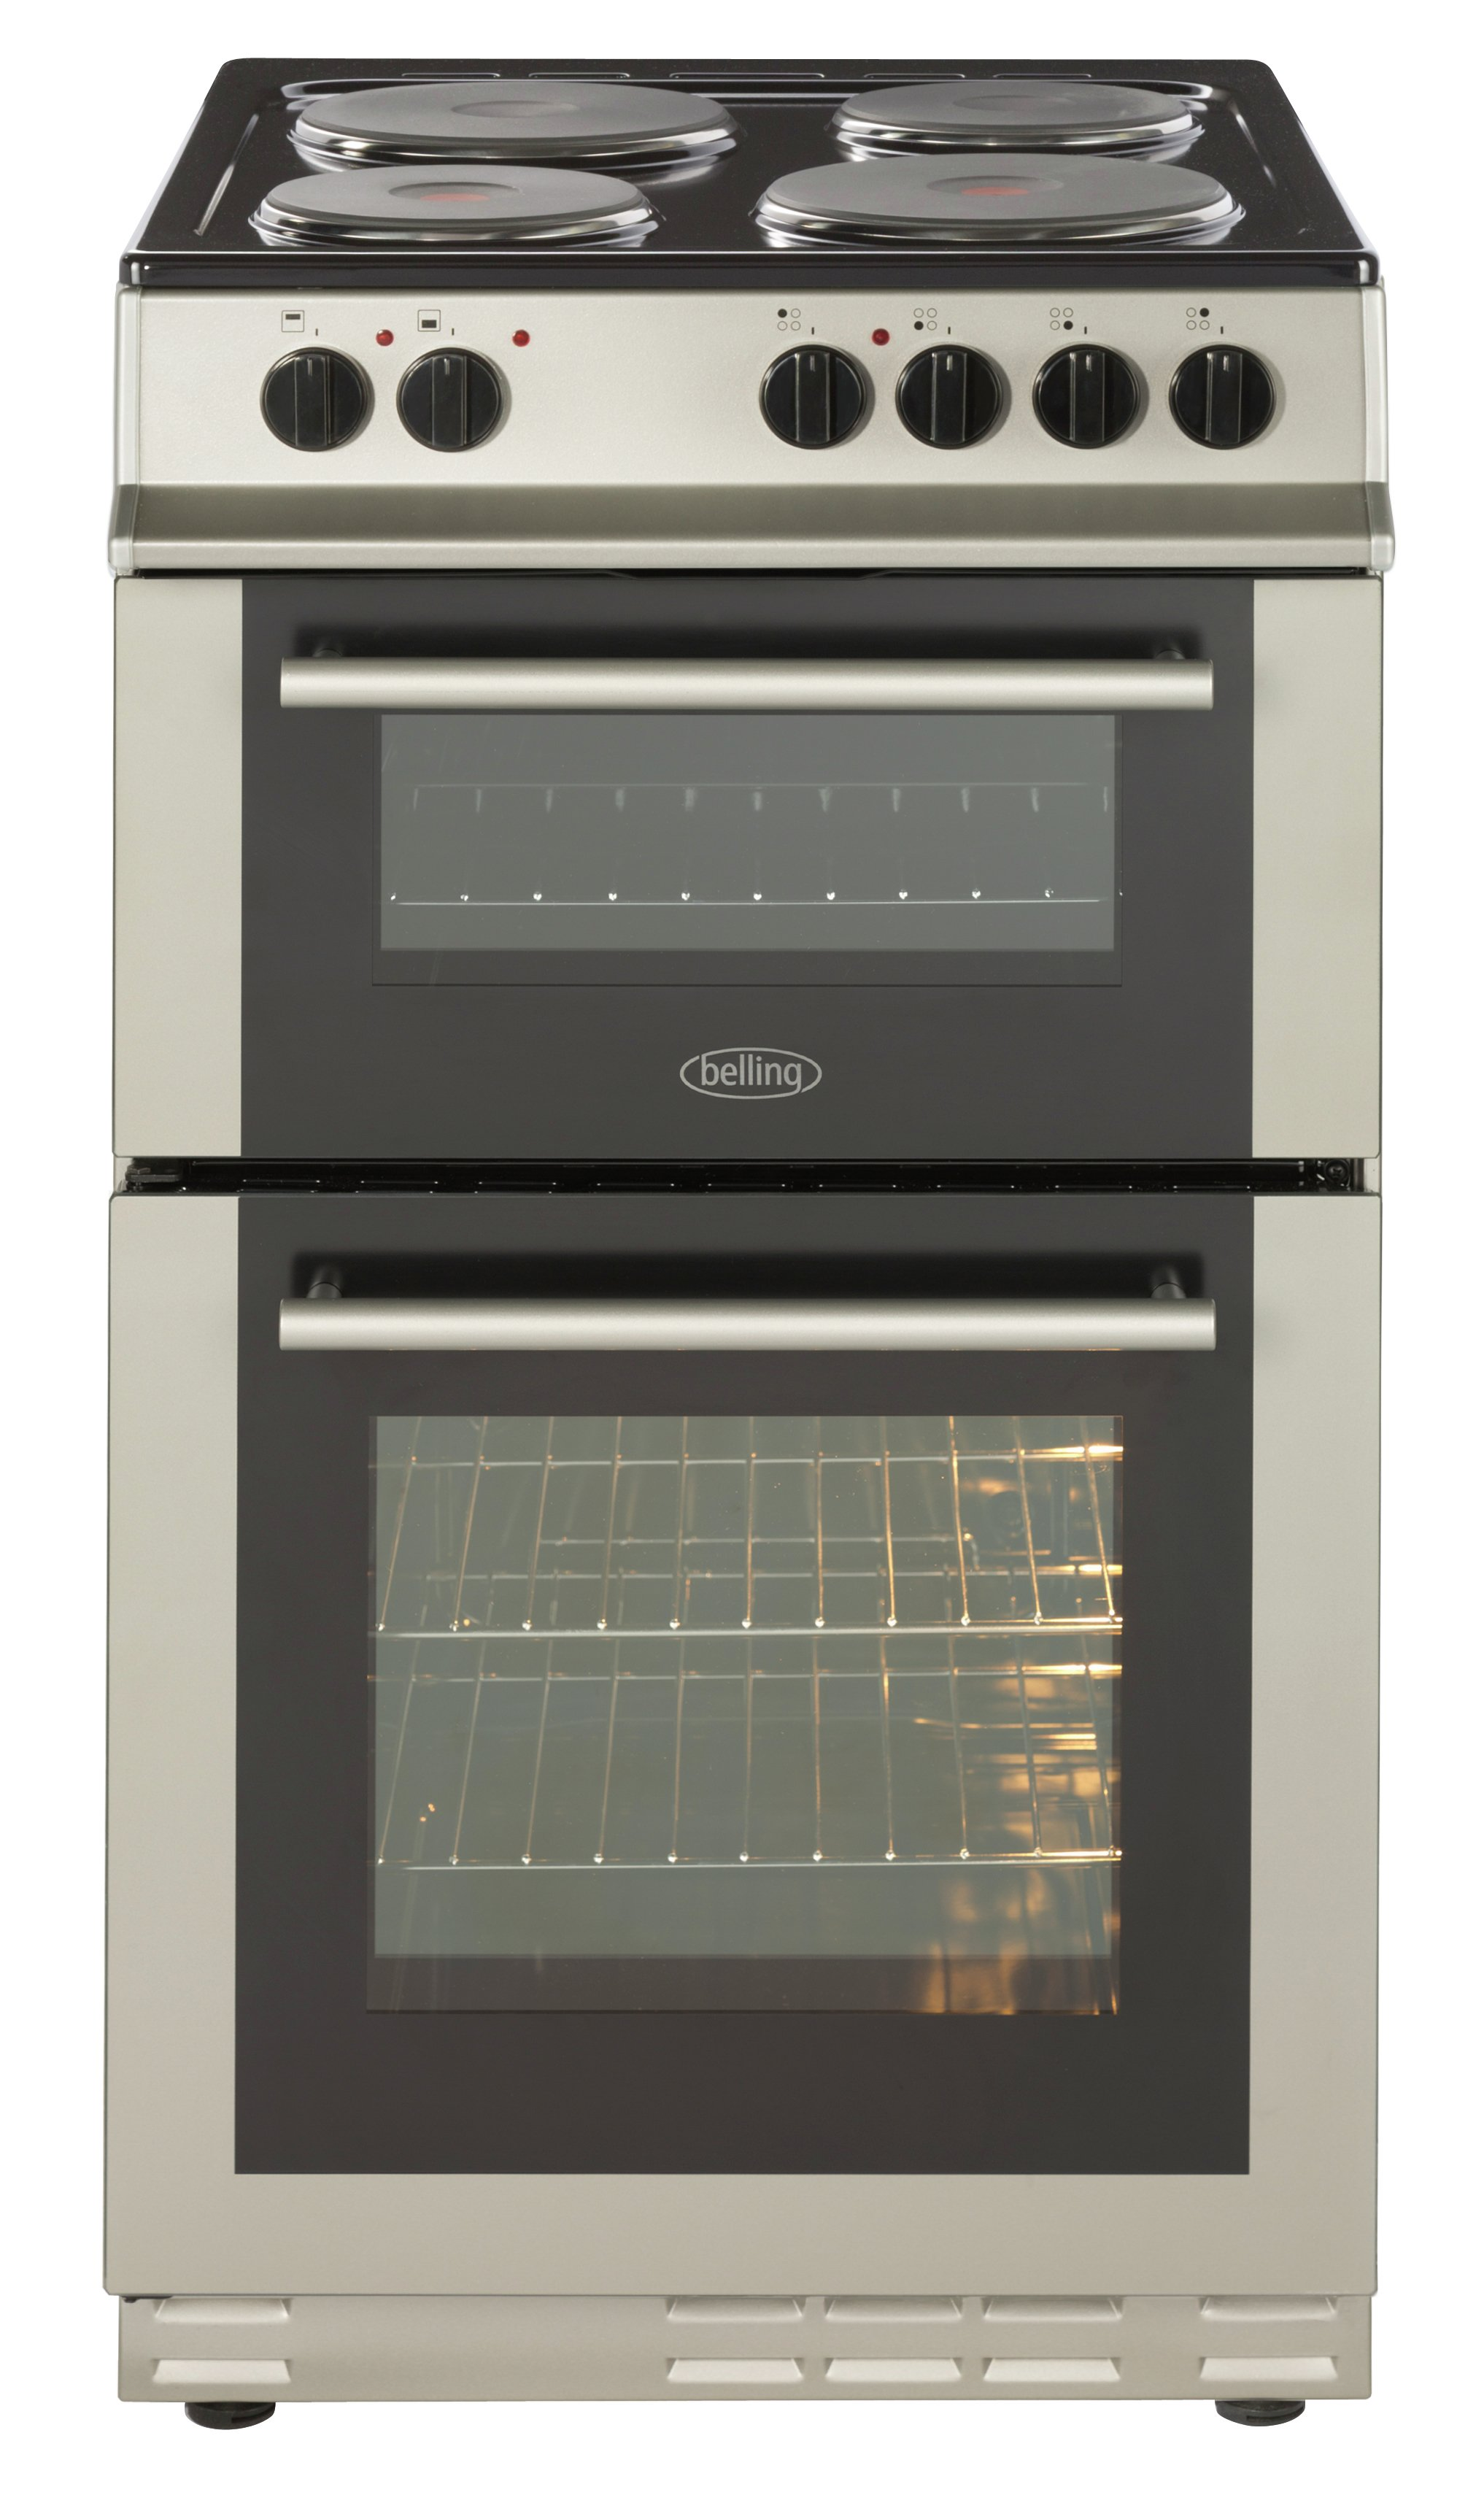 Belling - FS50EFDO - Electric Cooker - Silver